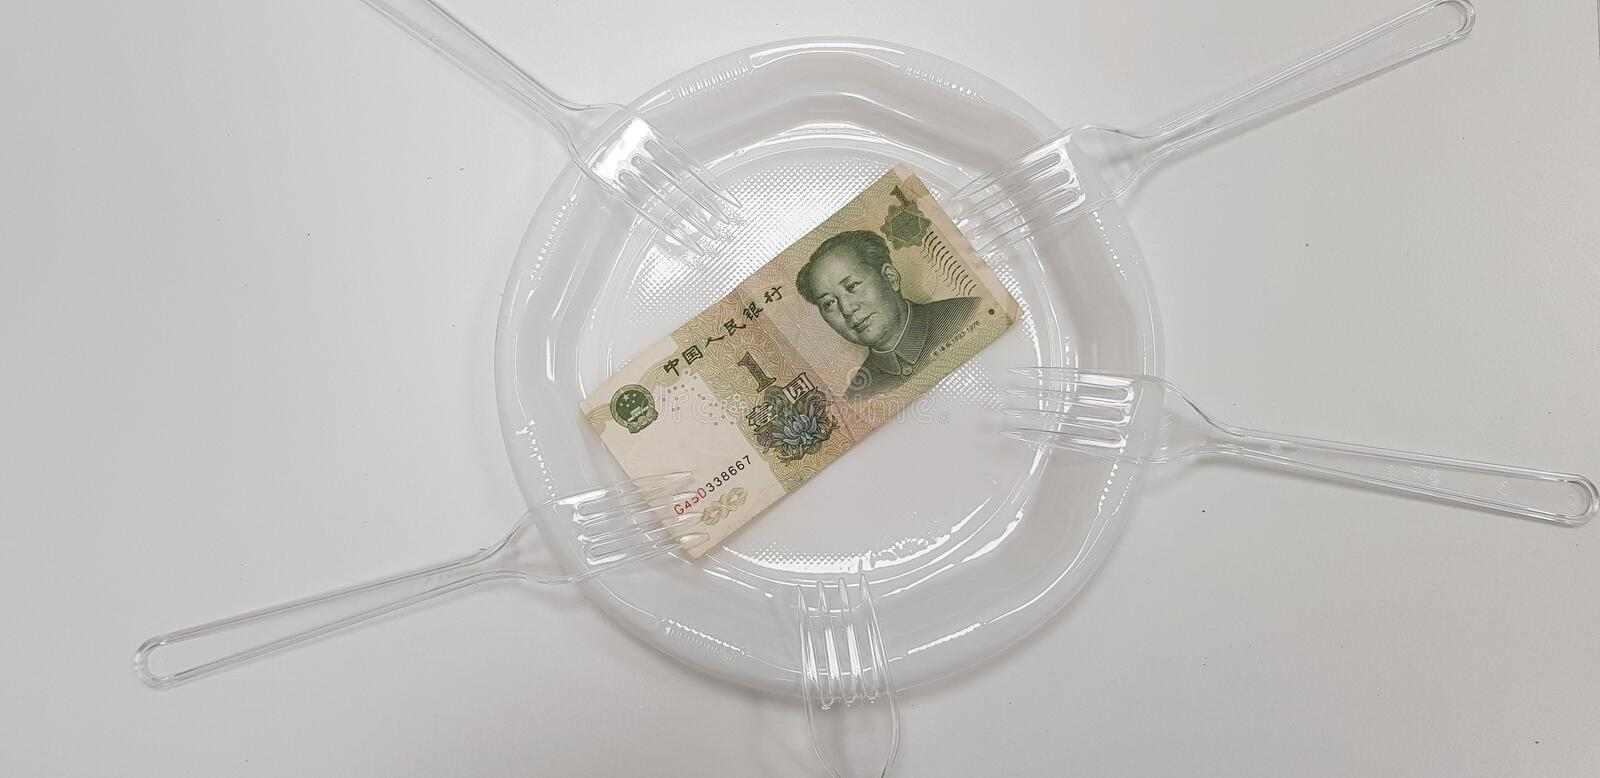 One china money banknote on empty white plastic plate. Surrounded by five disposable transparent forks asia bookmaker brokerage budget business capital currency royalty free stock photos